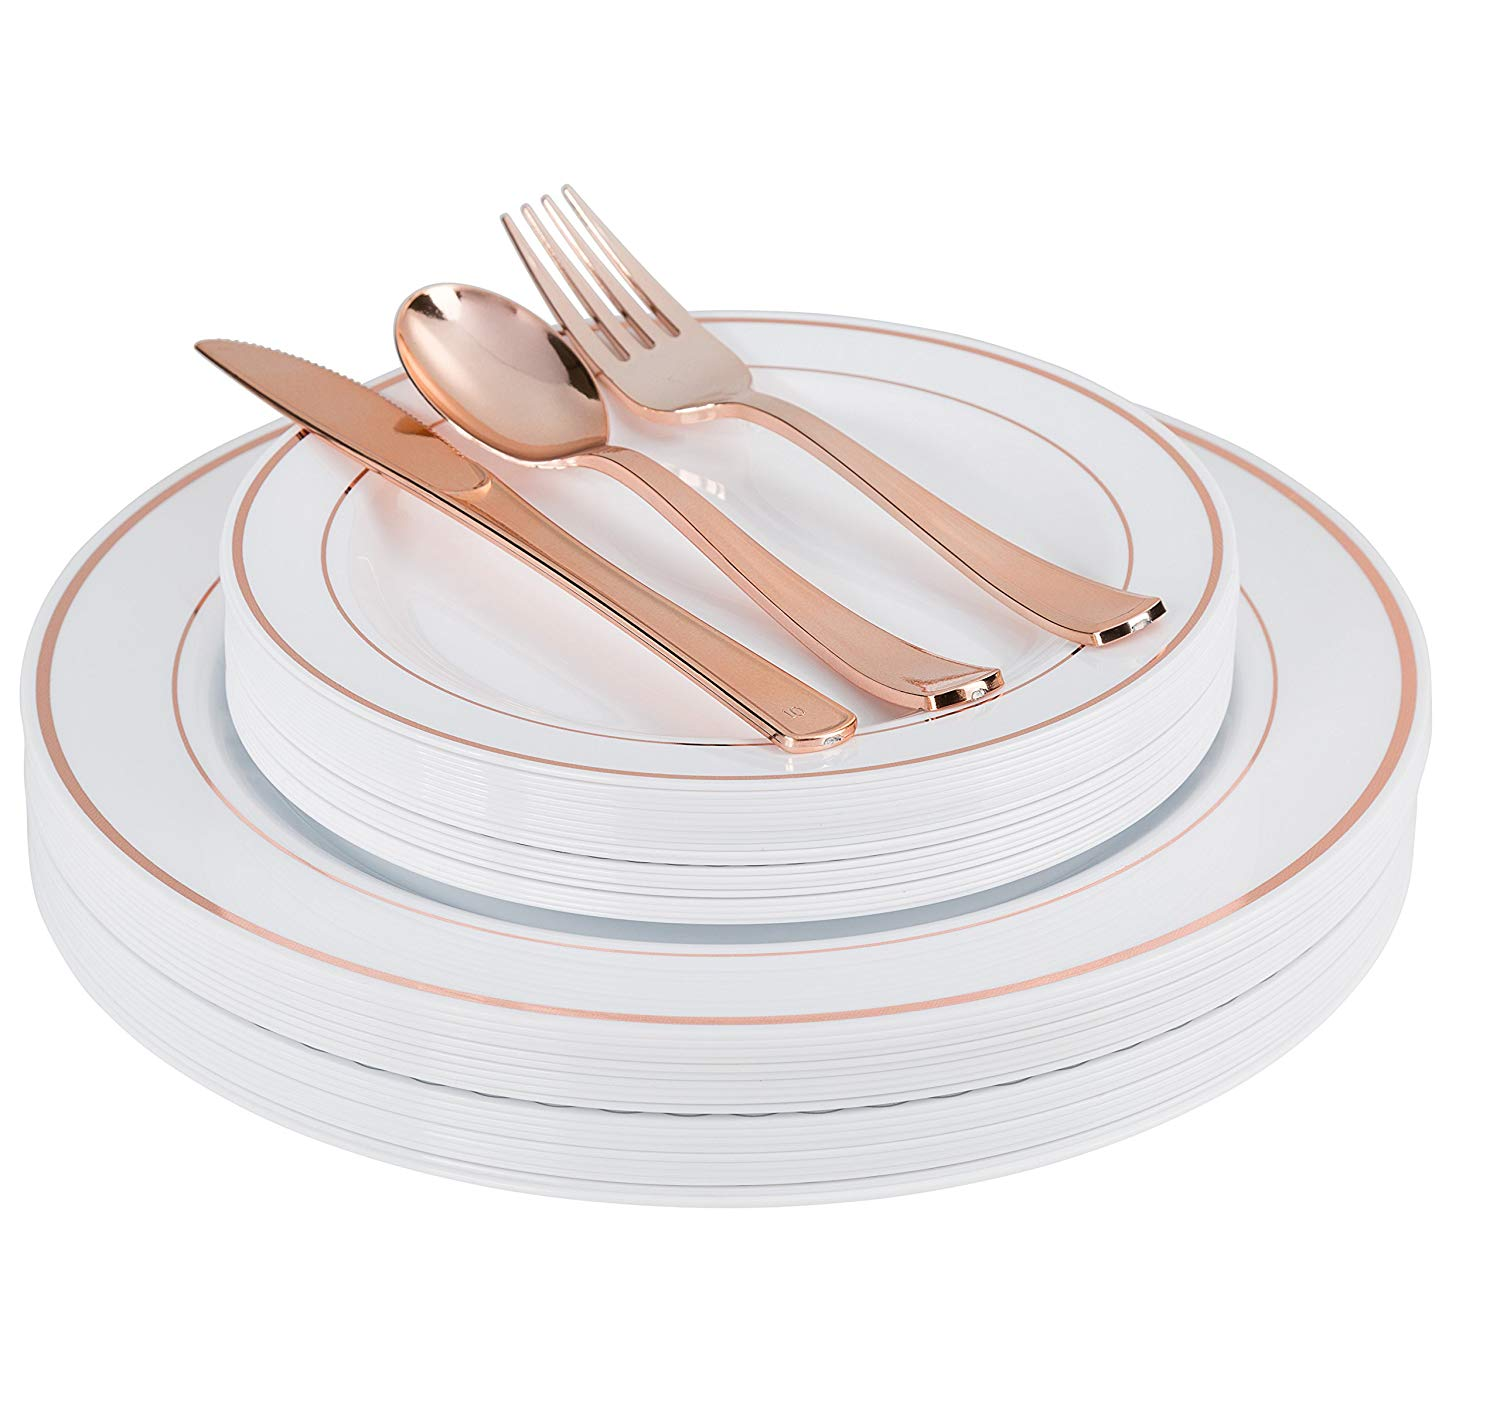 Exquisite 200 Piece Plastic Dinnerware Set - Includes 40 of Each: Dinner Plates, Dessert Plates, Forks, Spoons & Knives - Rose Gold